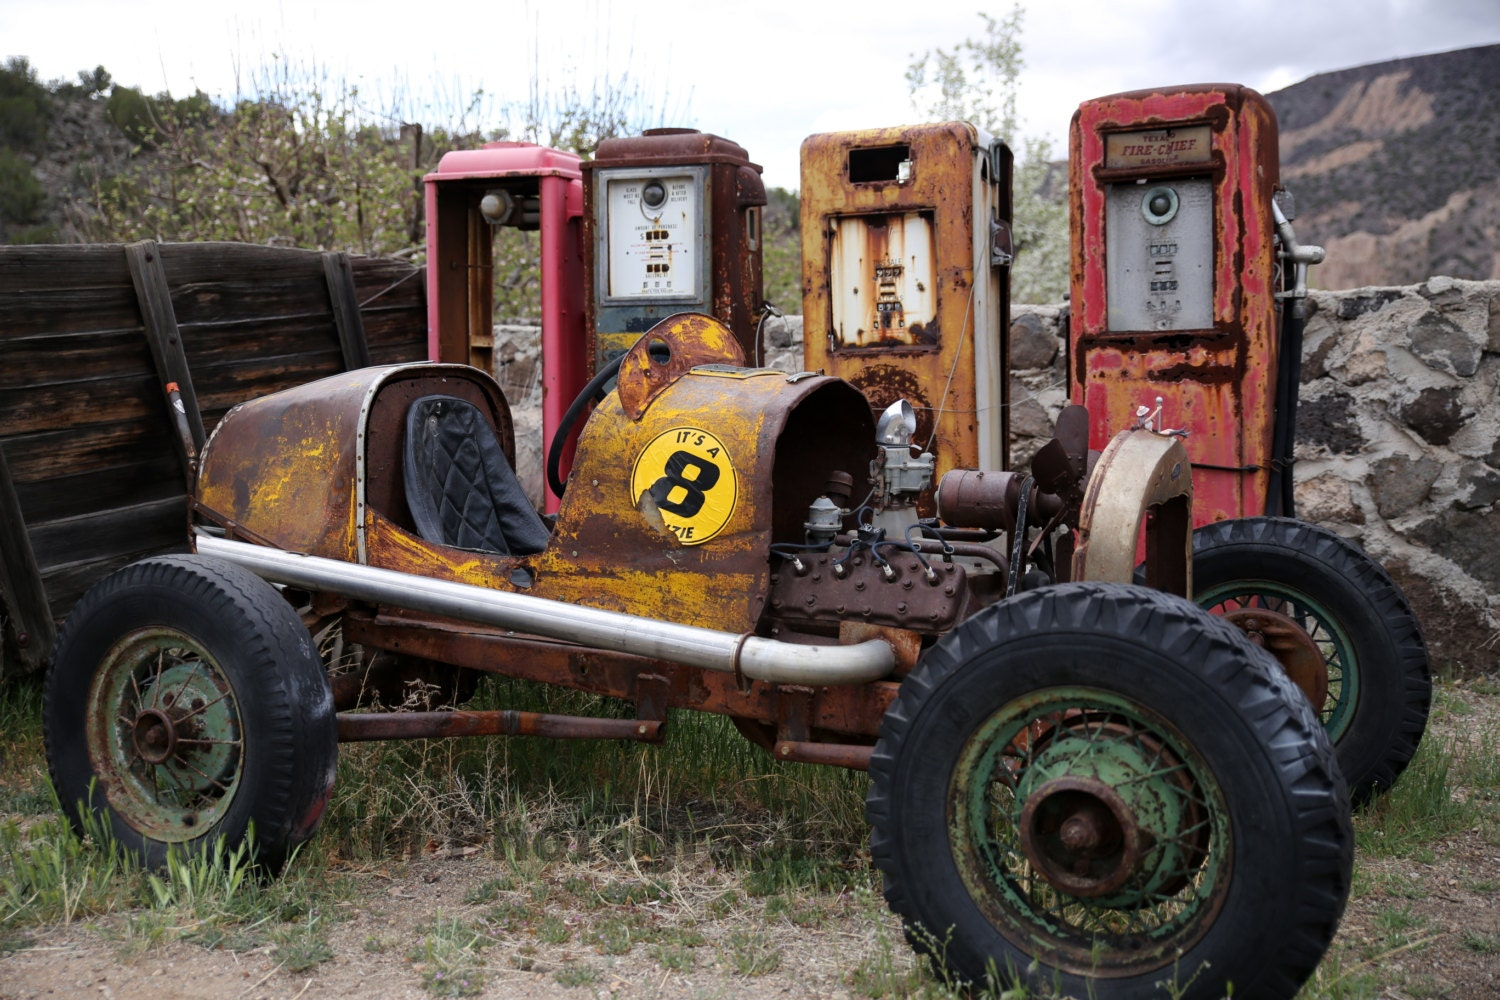 Hot Rod Old Race Car Old Hot Rod Old Gas Pumps Rusty